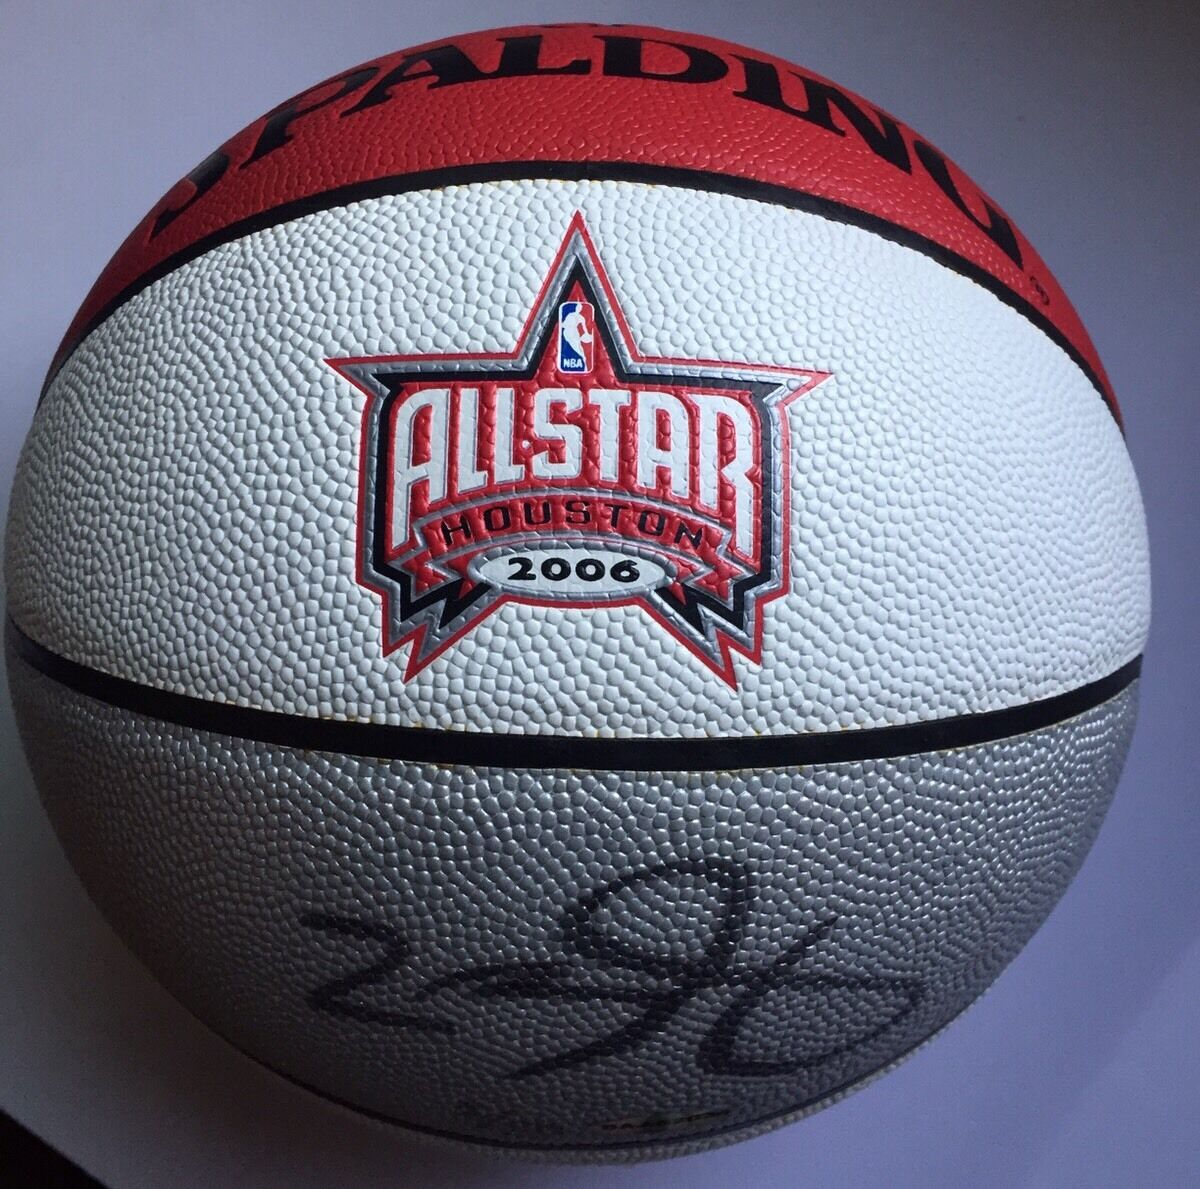 RARE Lebron James Autographed Basketball - ASG Houston 2006 LIMITED 2 50